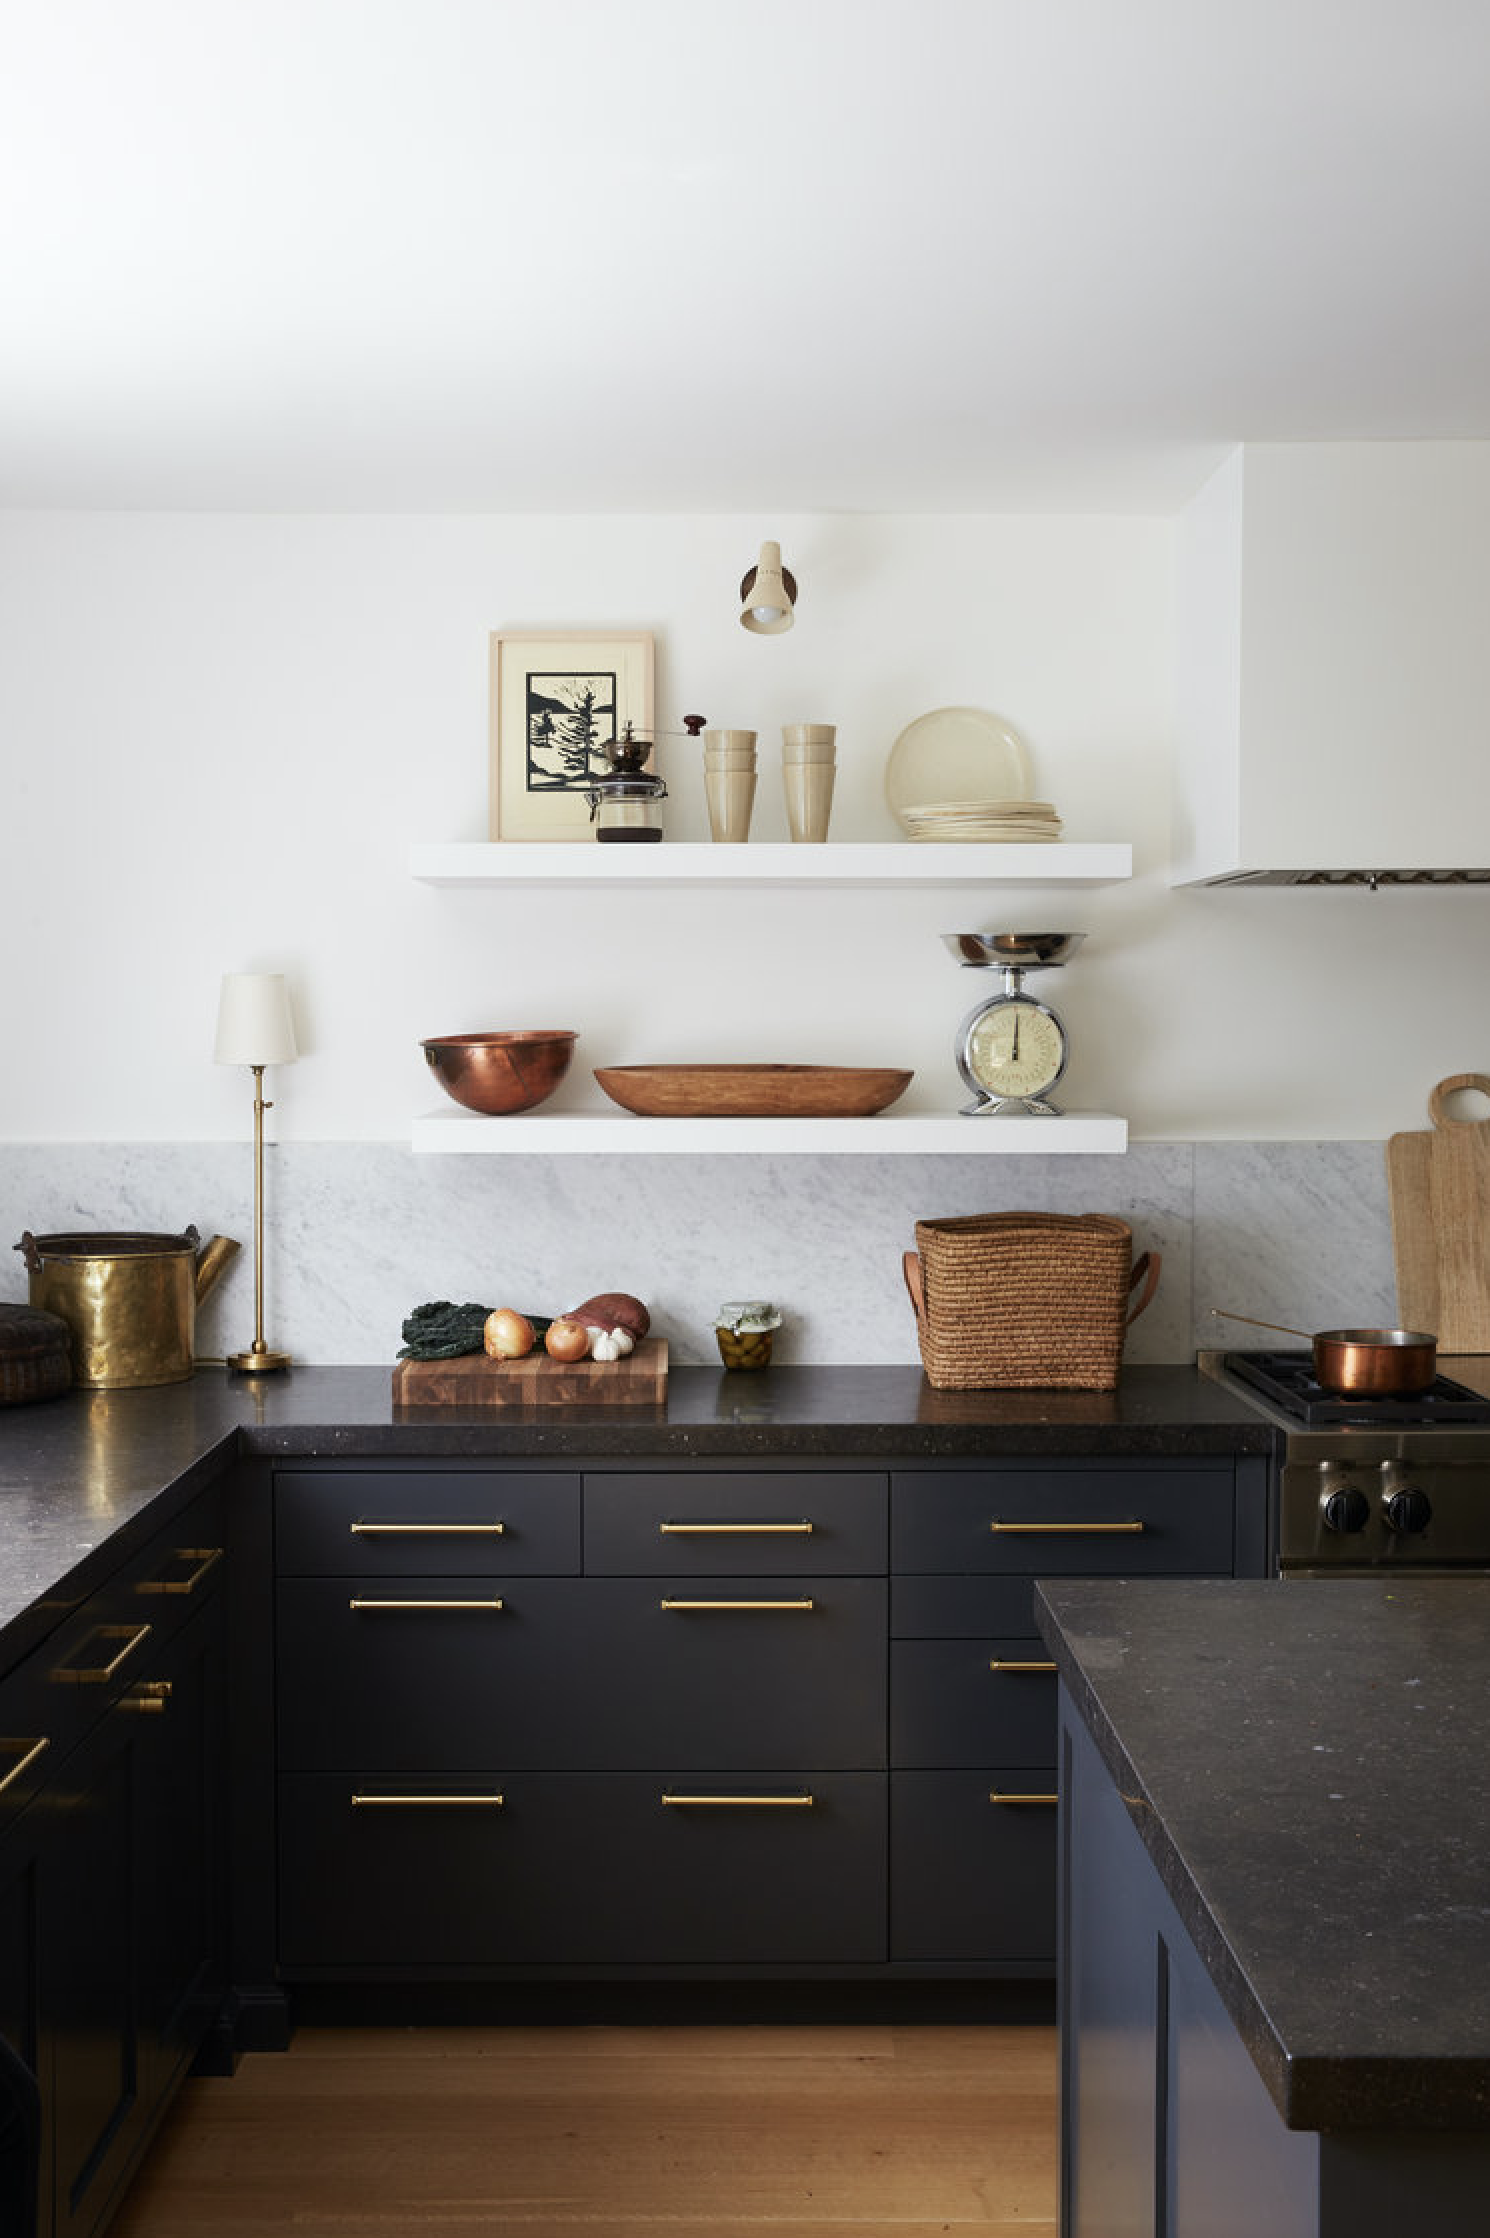 The Best Kitchen Paint Colors in 2019 – pickndecor.com/furniture